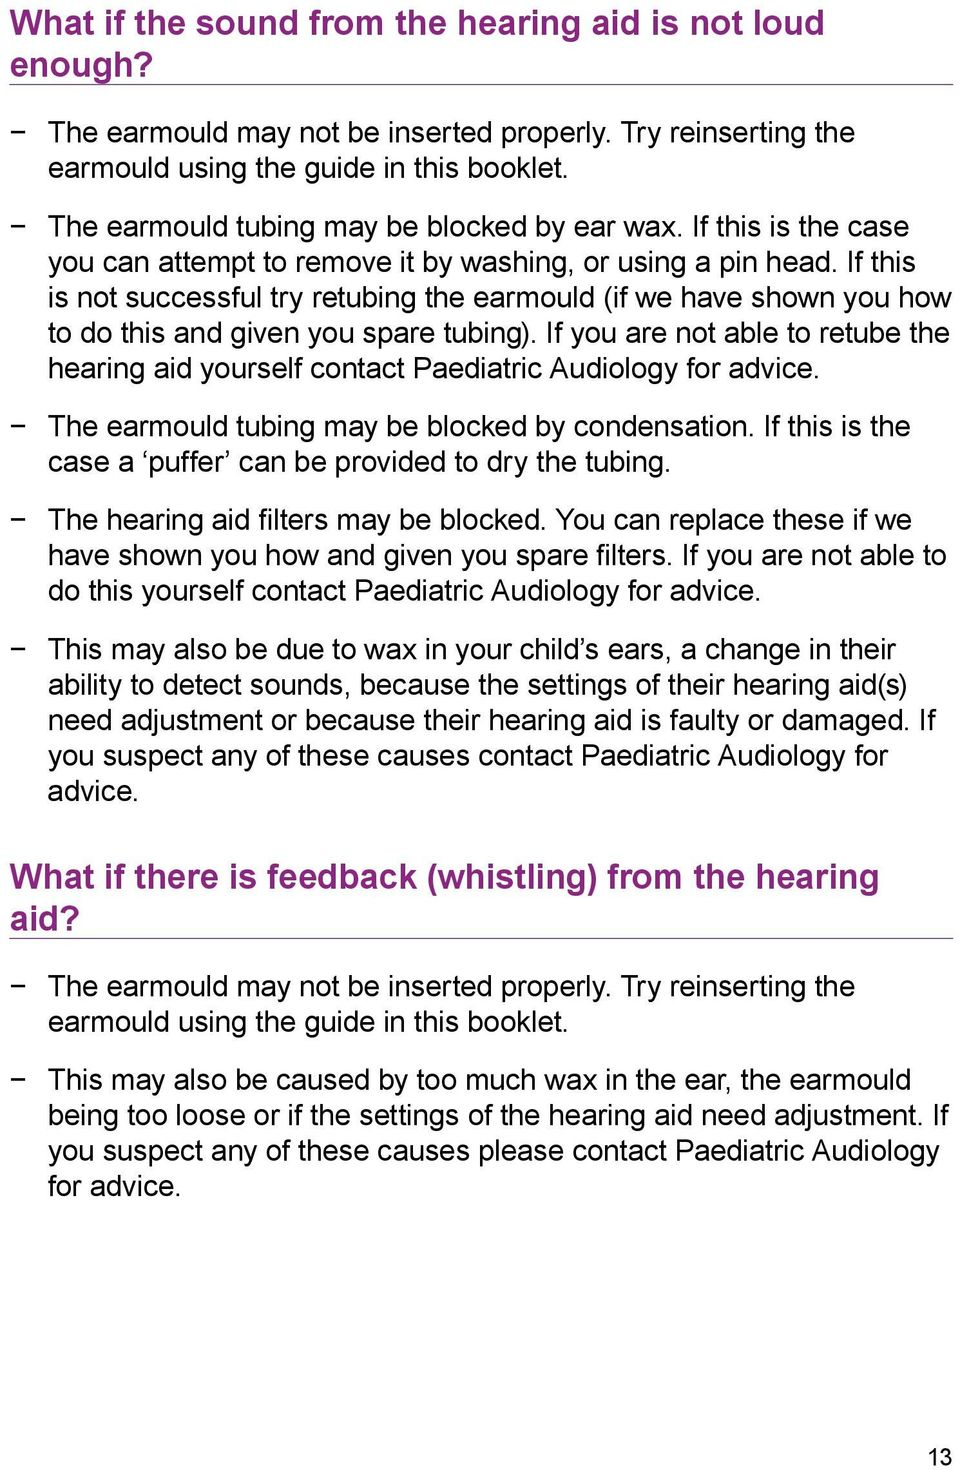 If this is not successful try retubing the earmould (if we have shown you how to do this and given you spare tubing).